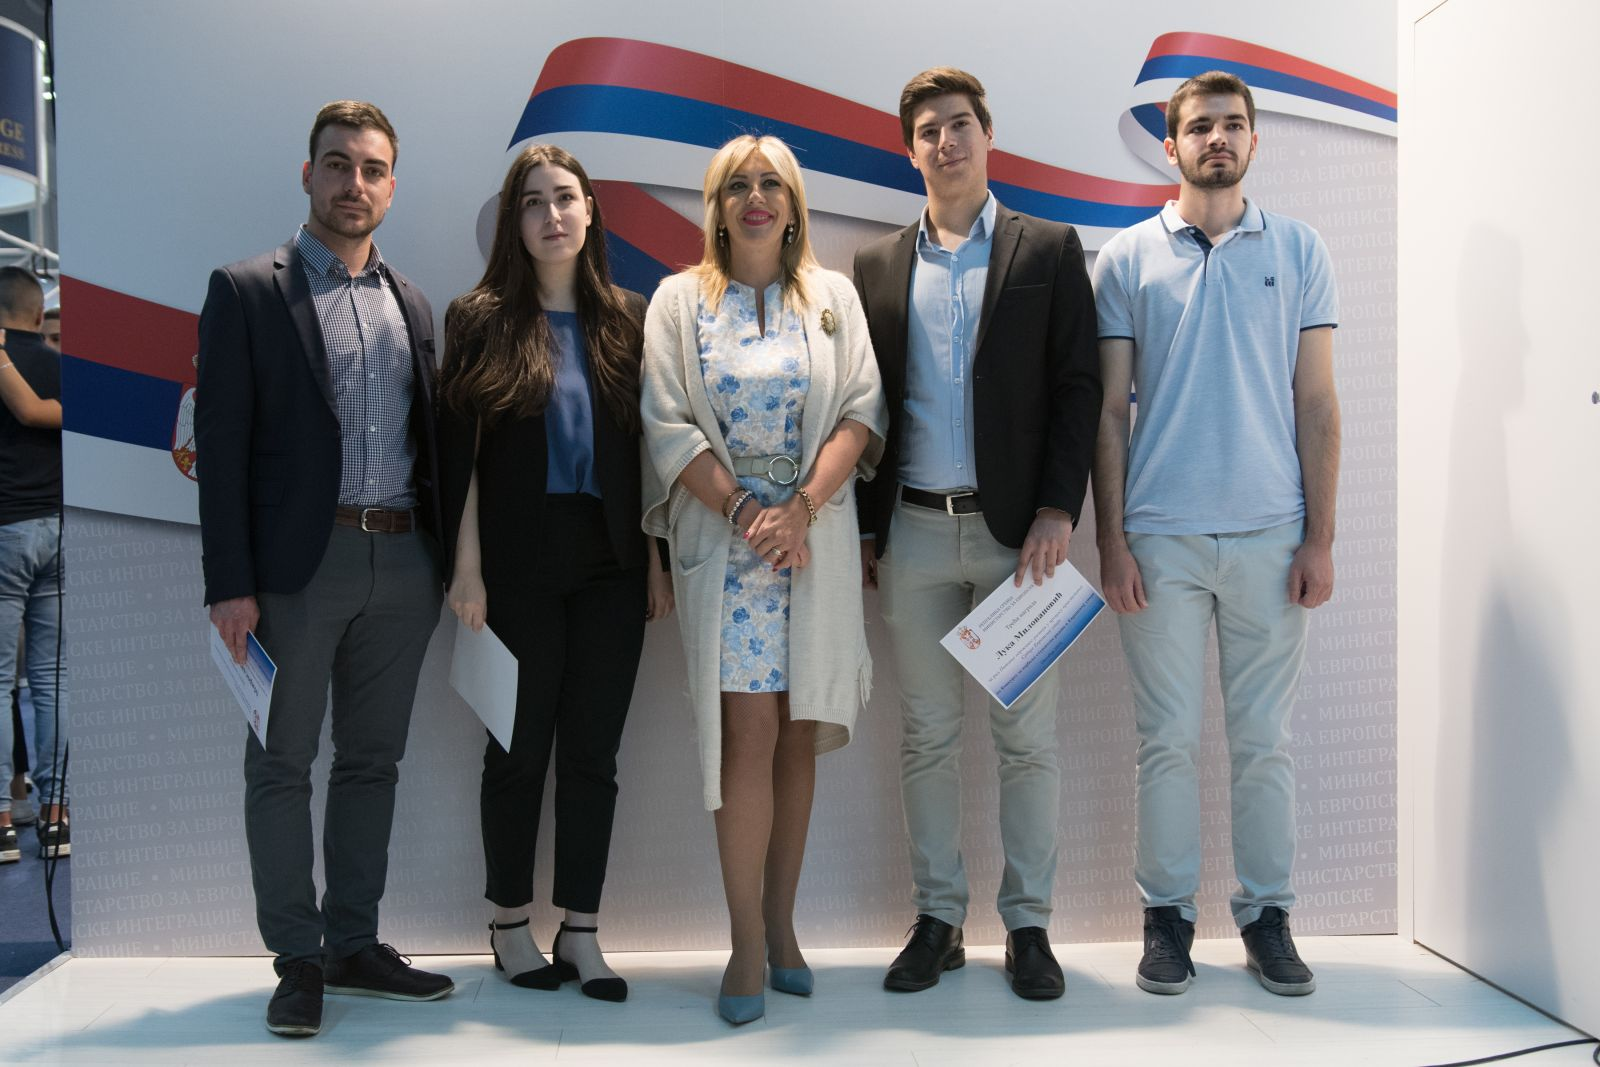 J. Joksimović awarded certificates to students for their papers in the field of European integration process